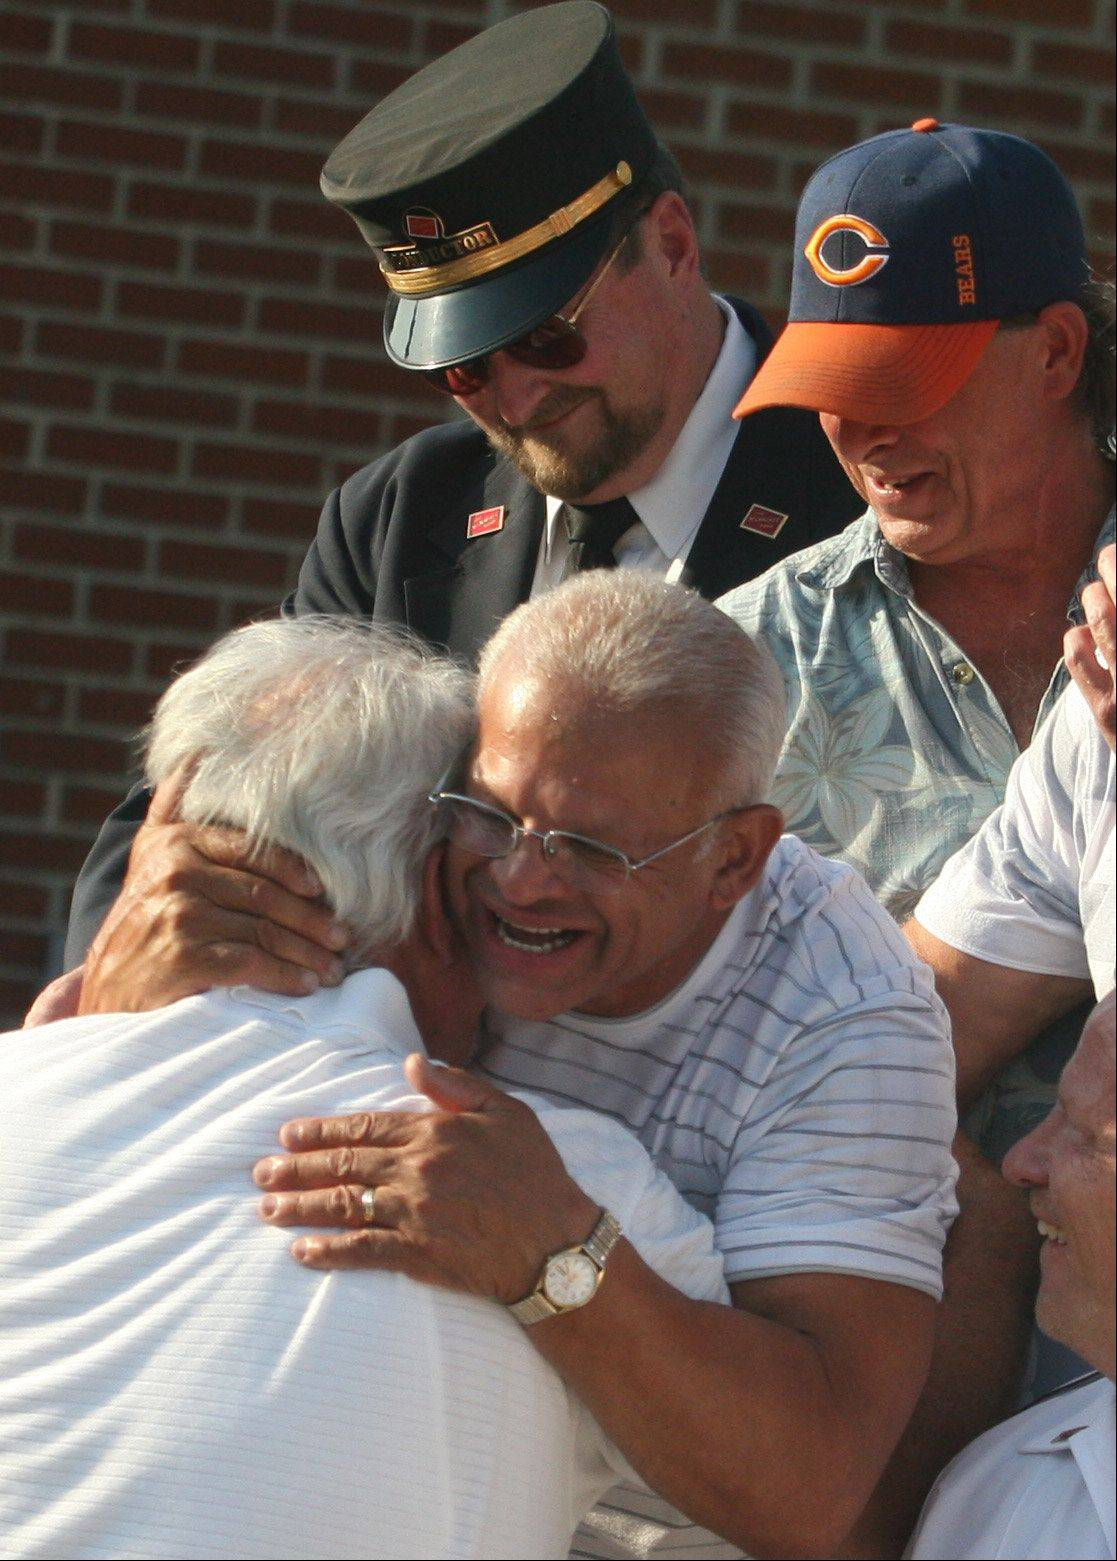 Metra engineer Hector Feliciano retired after piloting a train for the final time upon arrival at the Chicago Street Station in Elgin on Tuesday evening. Here, Feliciano greets friends gathered to wish him well.